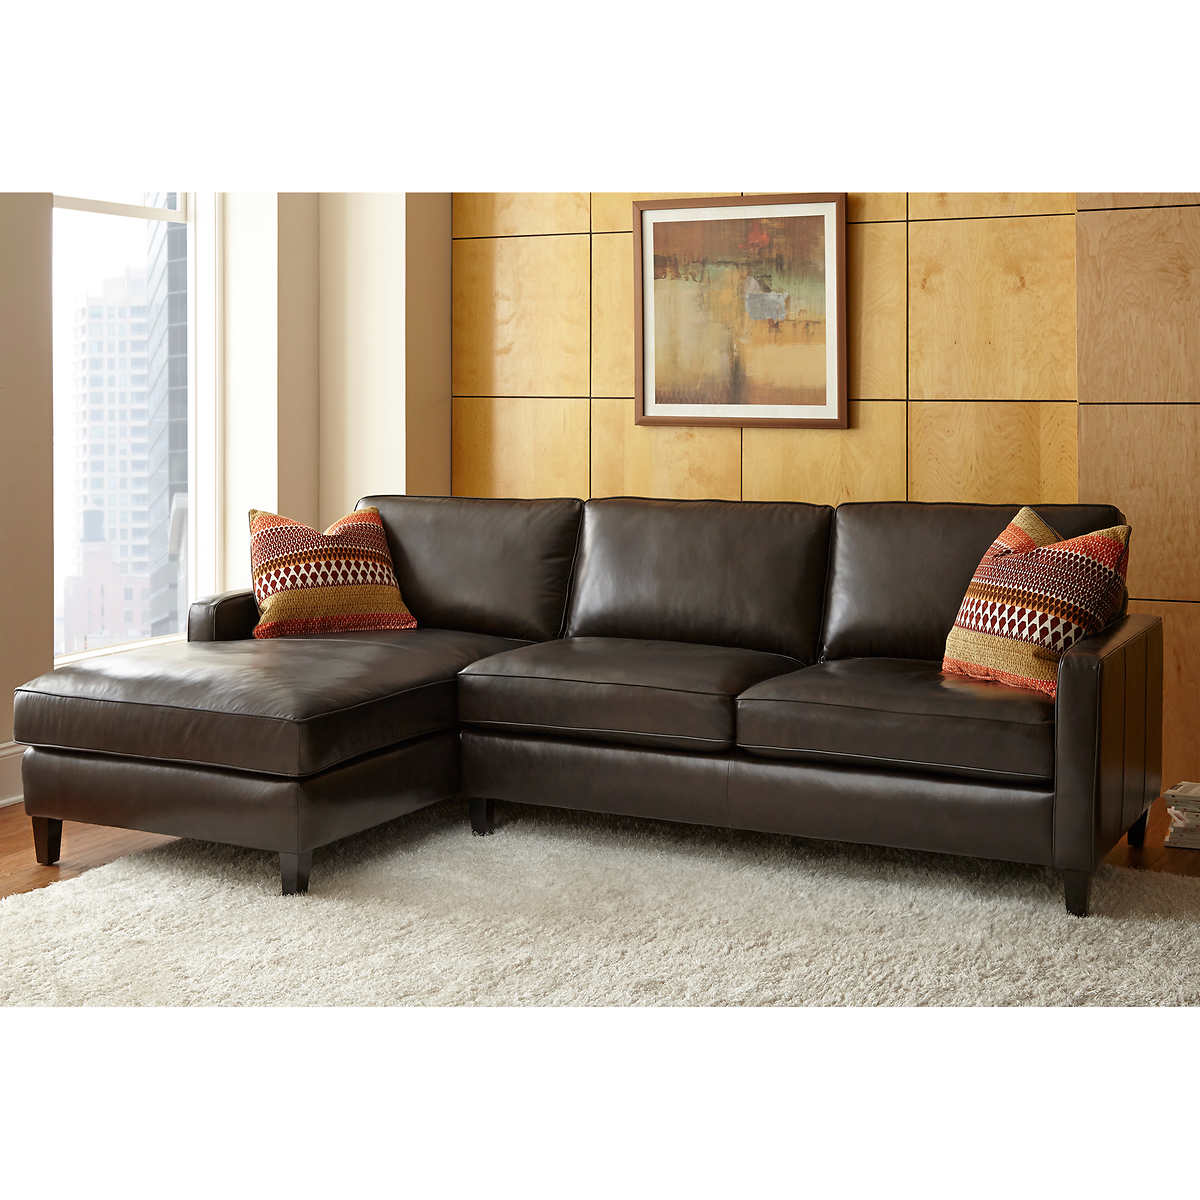 Andersen Top Grain Leather Chaise Sectional Walnut Brown